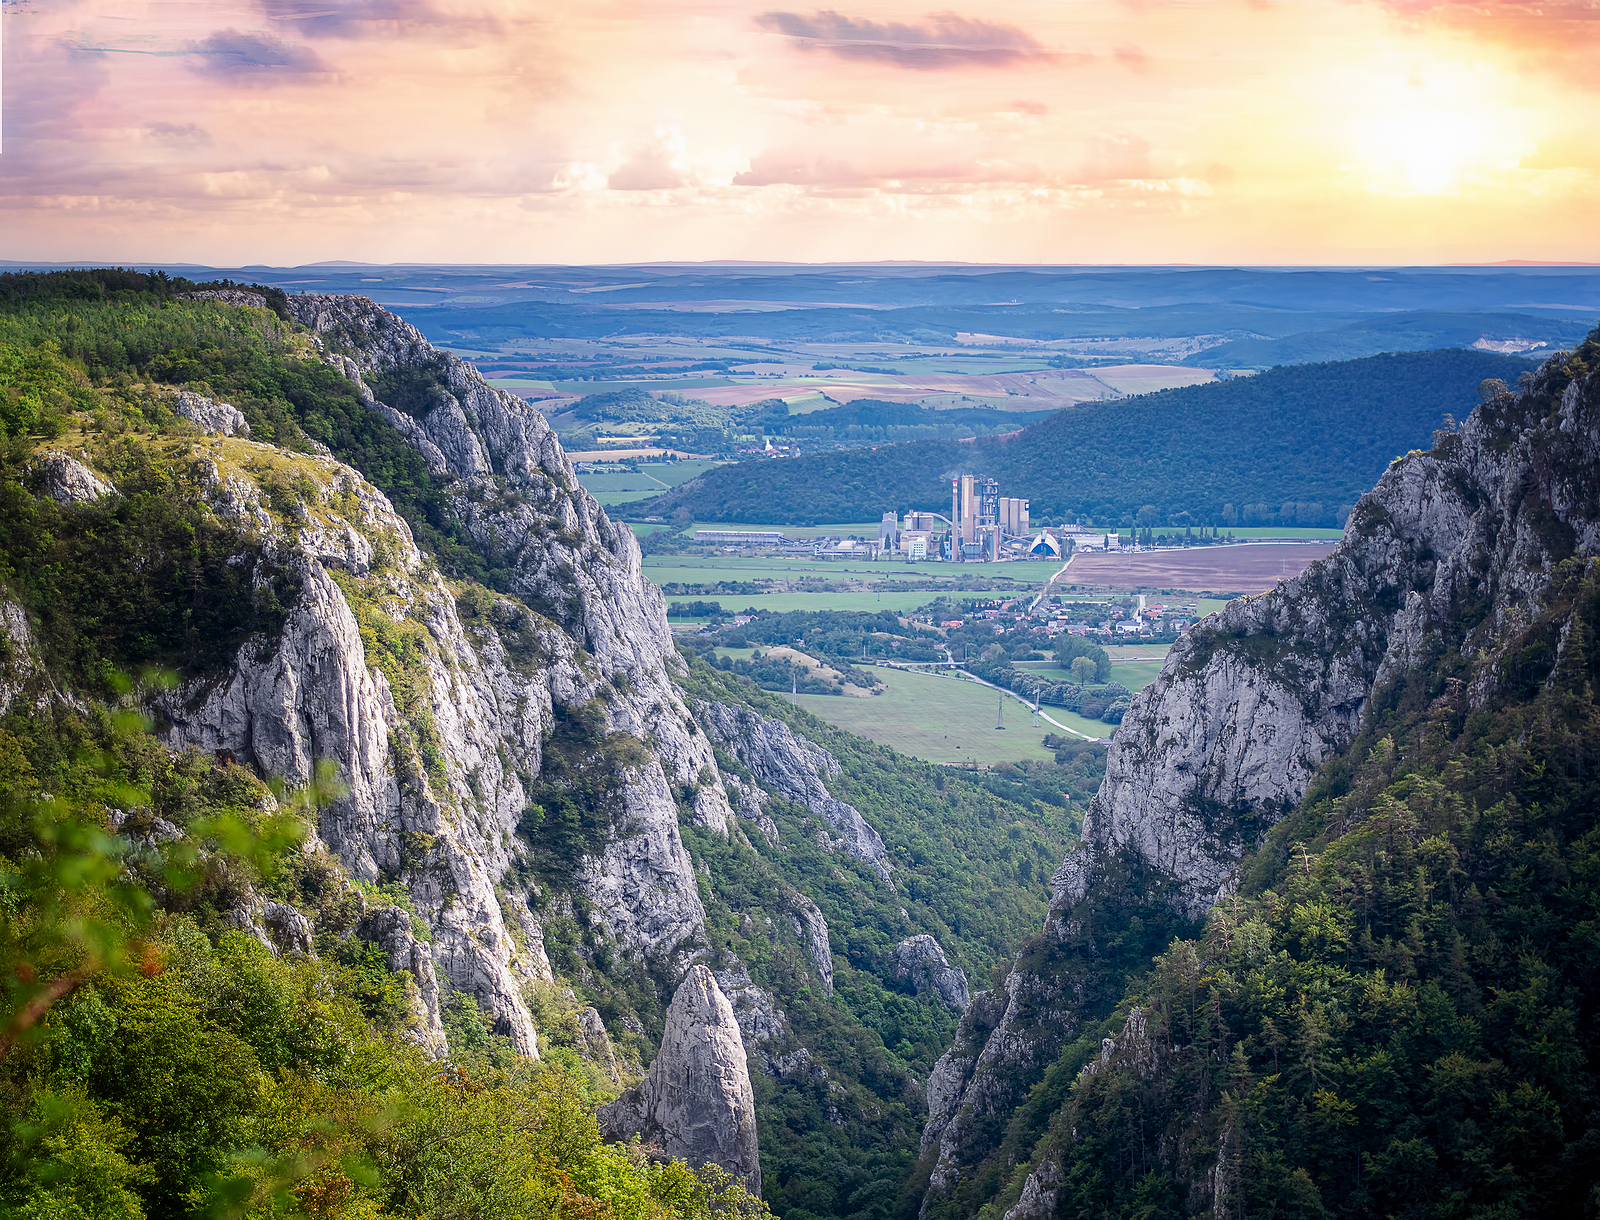 The most beautiful four-leaf clover of Slovak Karst: A trip from dawn to dusk